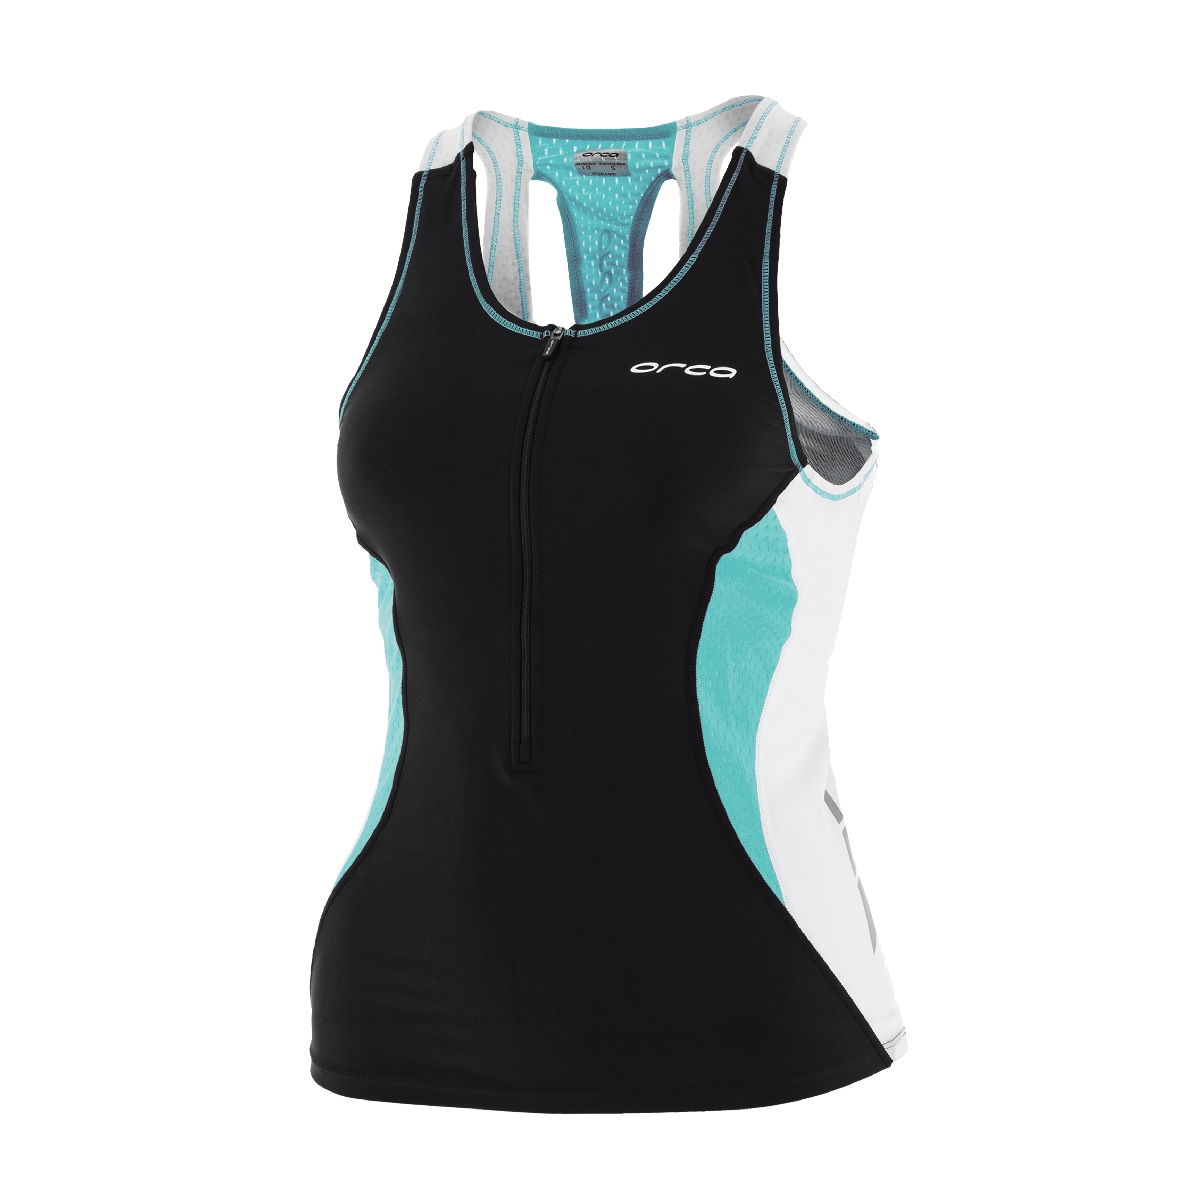 Orca Core Support Triathlon Singlet Women's Size M Black Turquoise U.S.A. & Canada